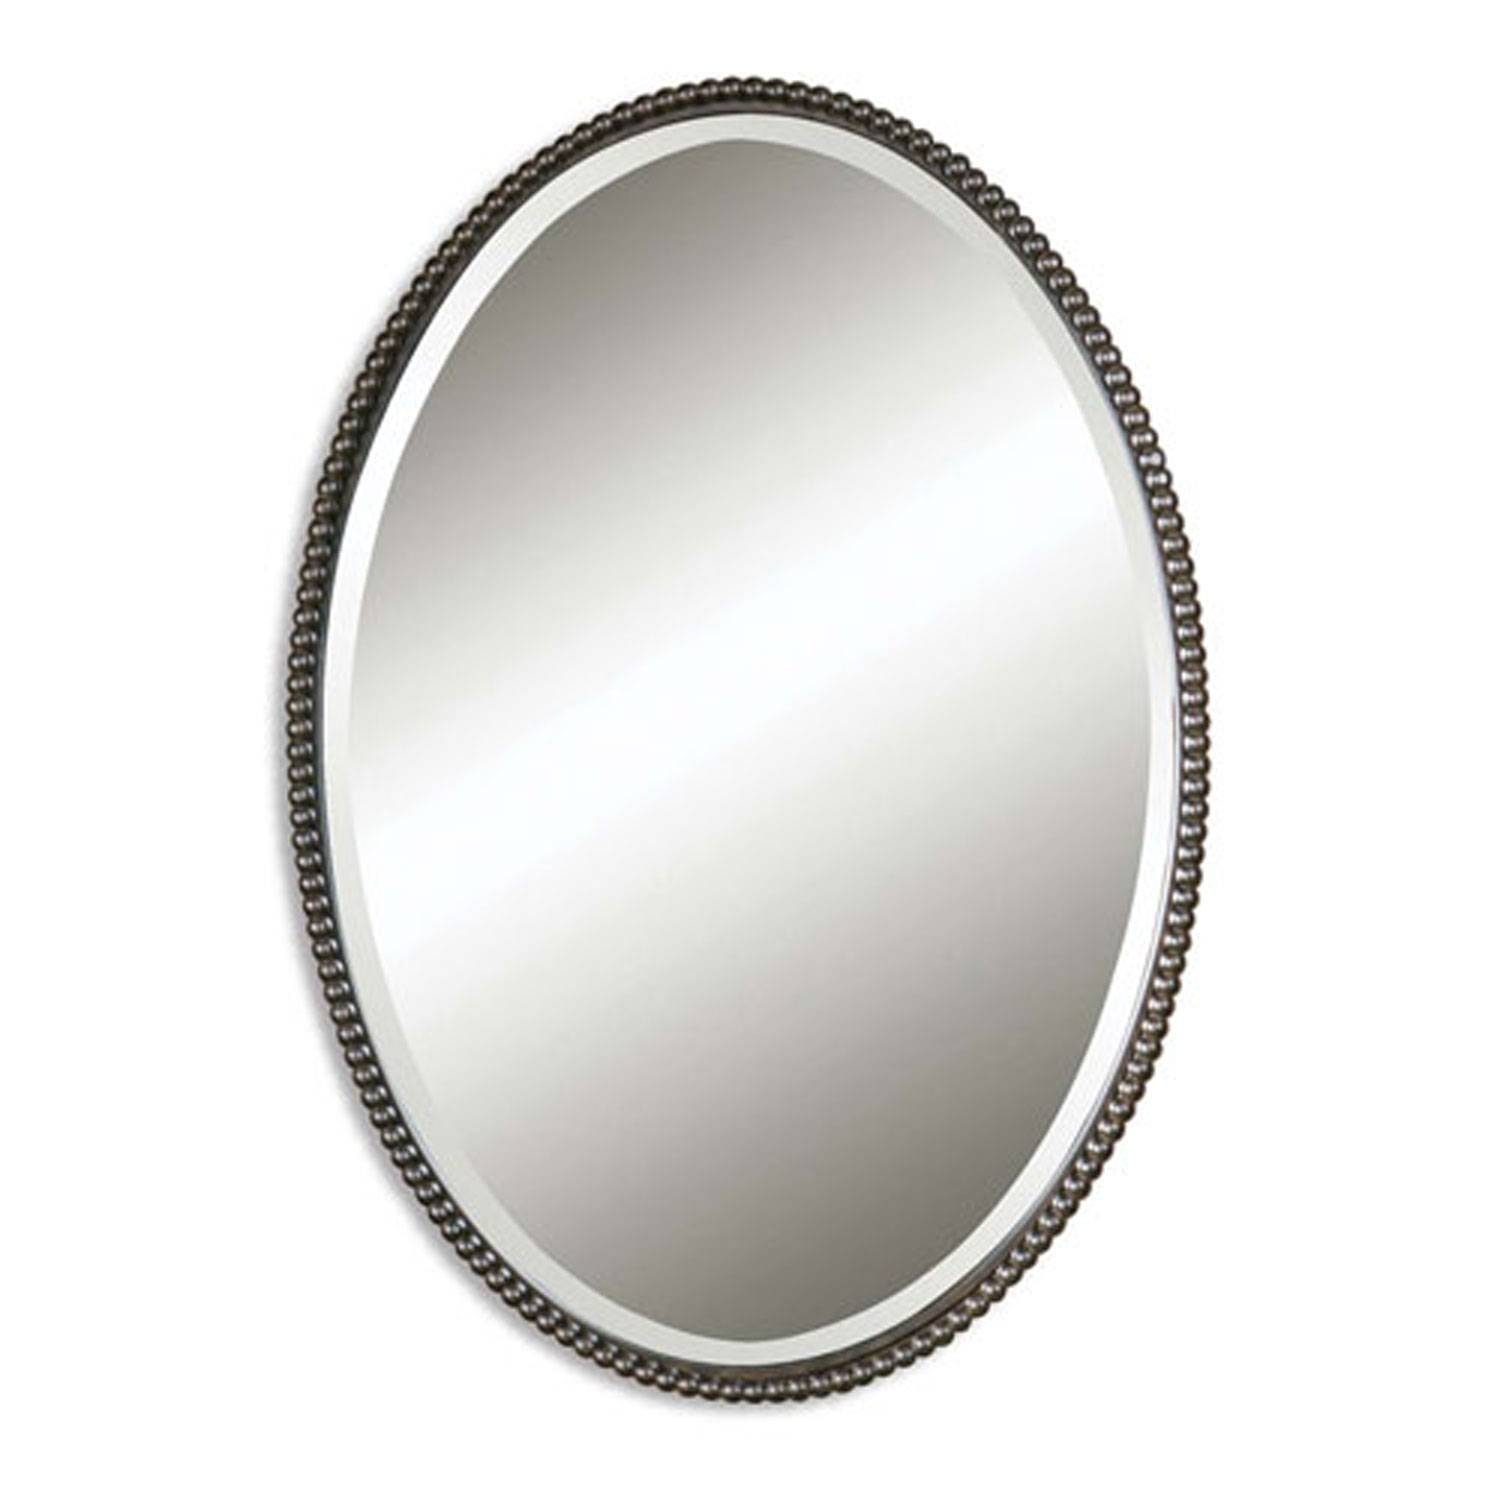 Long Oval Mirror, Wall Mirrors Bathroom Mirrors Bellacor Bathroom regarding White Oval Wall Mirrors (Image 5 of 15)